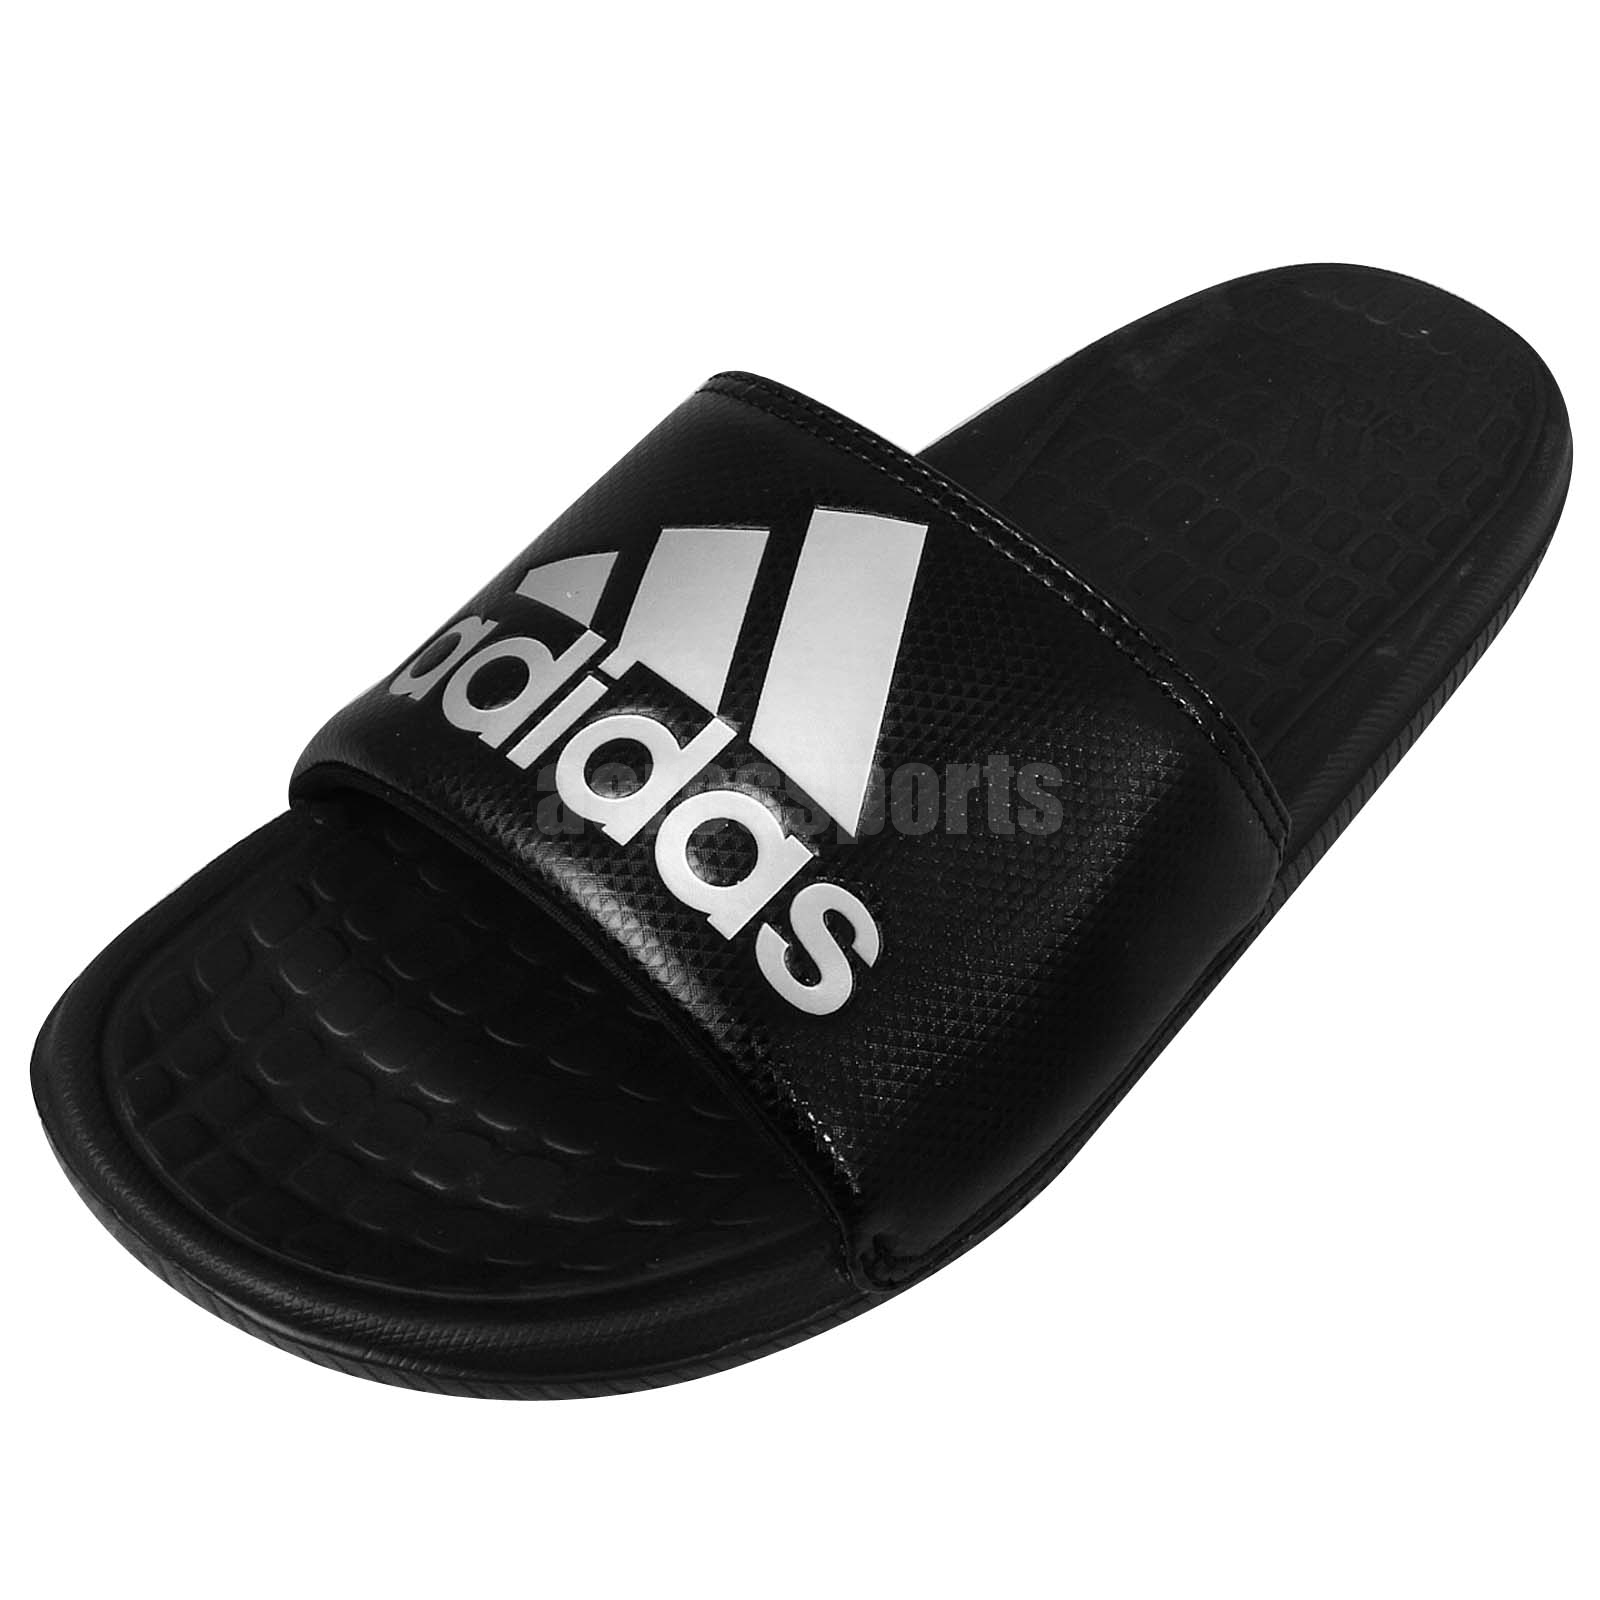 81a9280a1 adidas slides shoes on sale   OFF61% Discounts